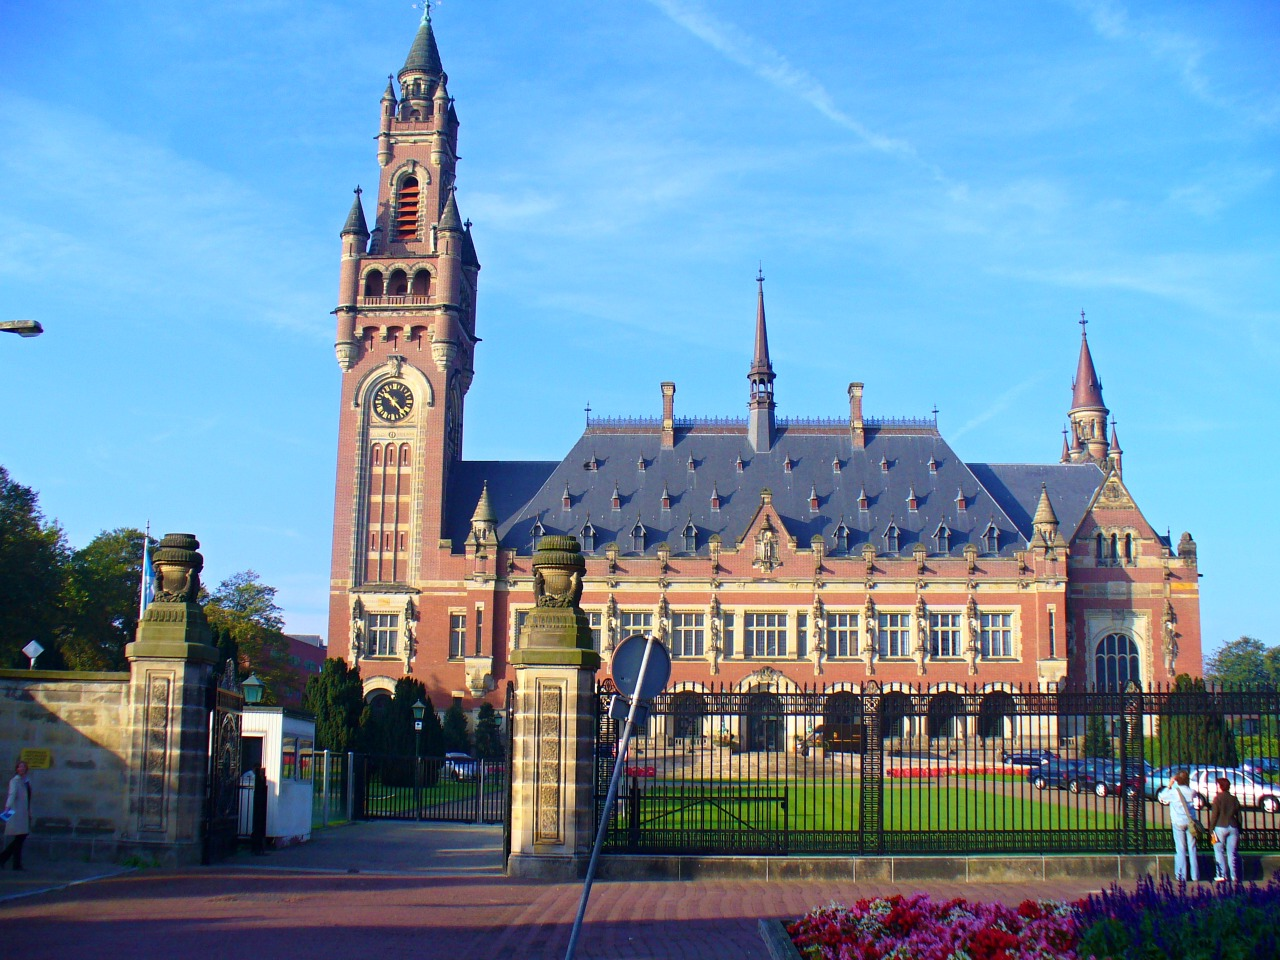 The Hague, the International Court of Justice, Best Places to Visit in the Netherlands